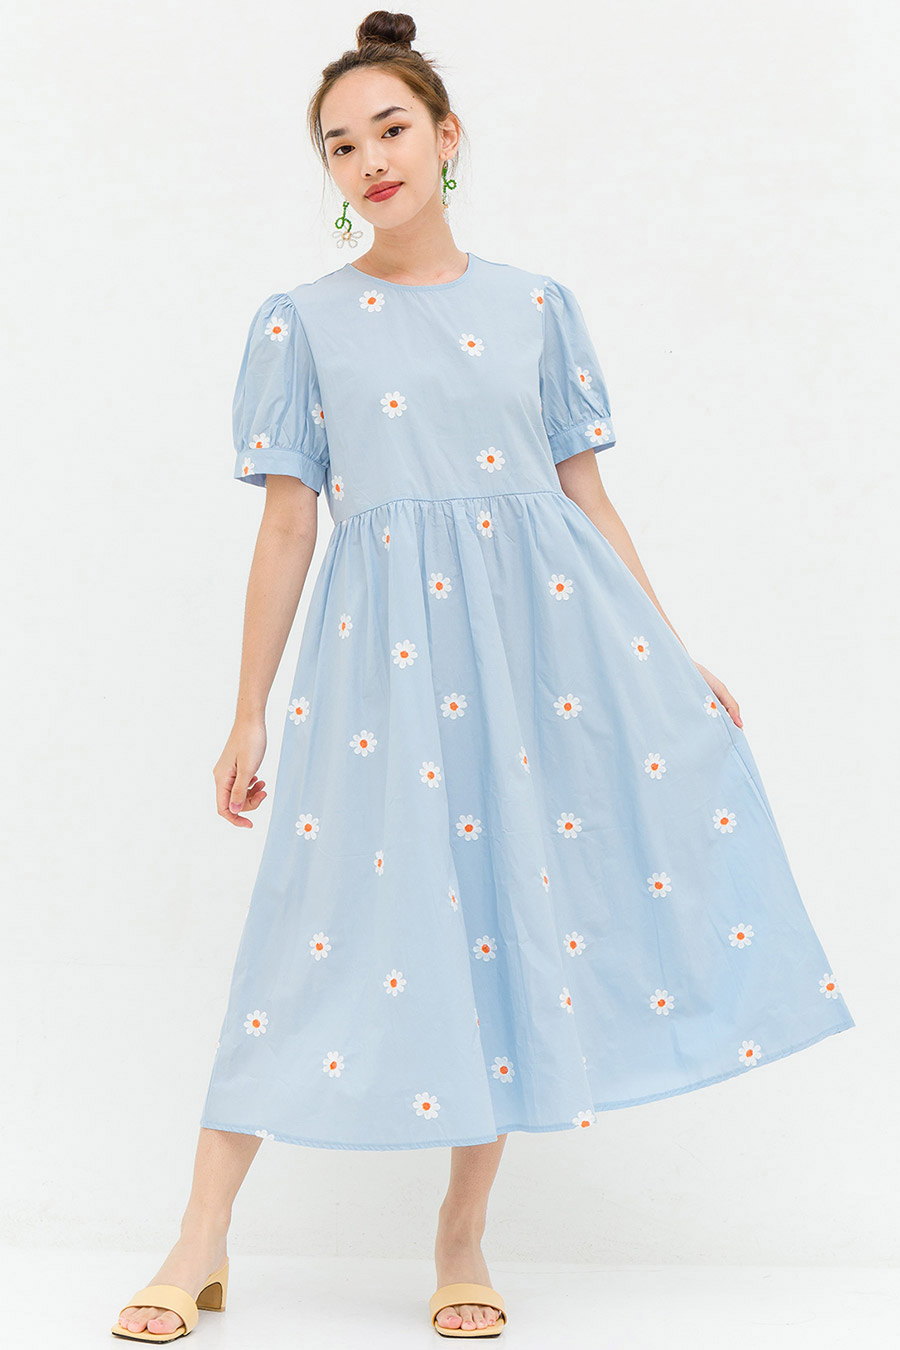 *BO* GARRETT DRESS - POWDER FLEUR